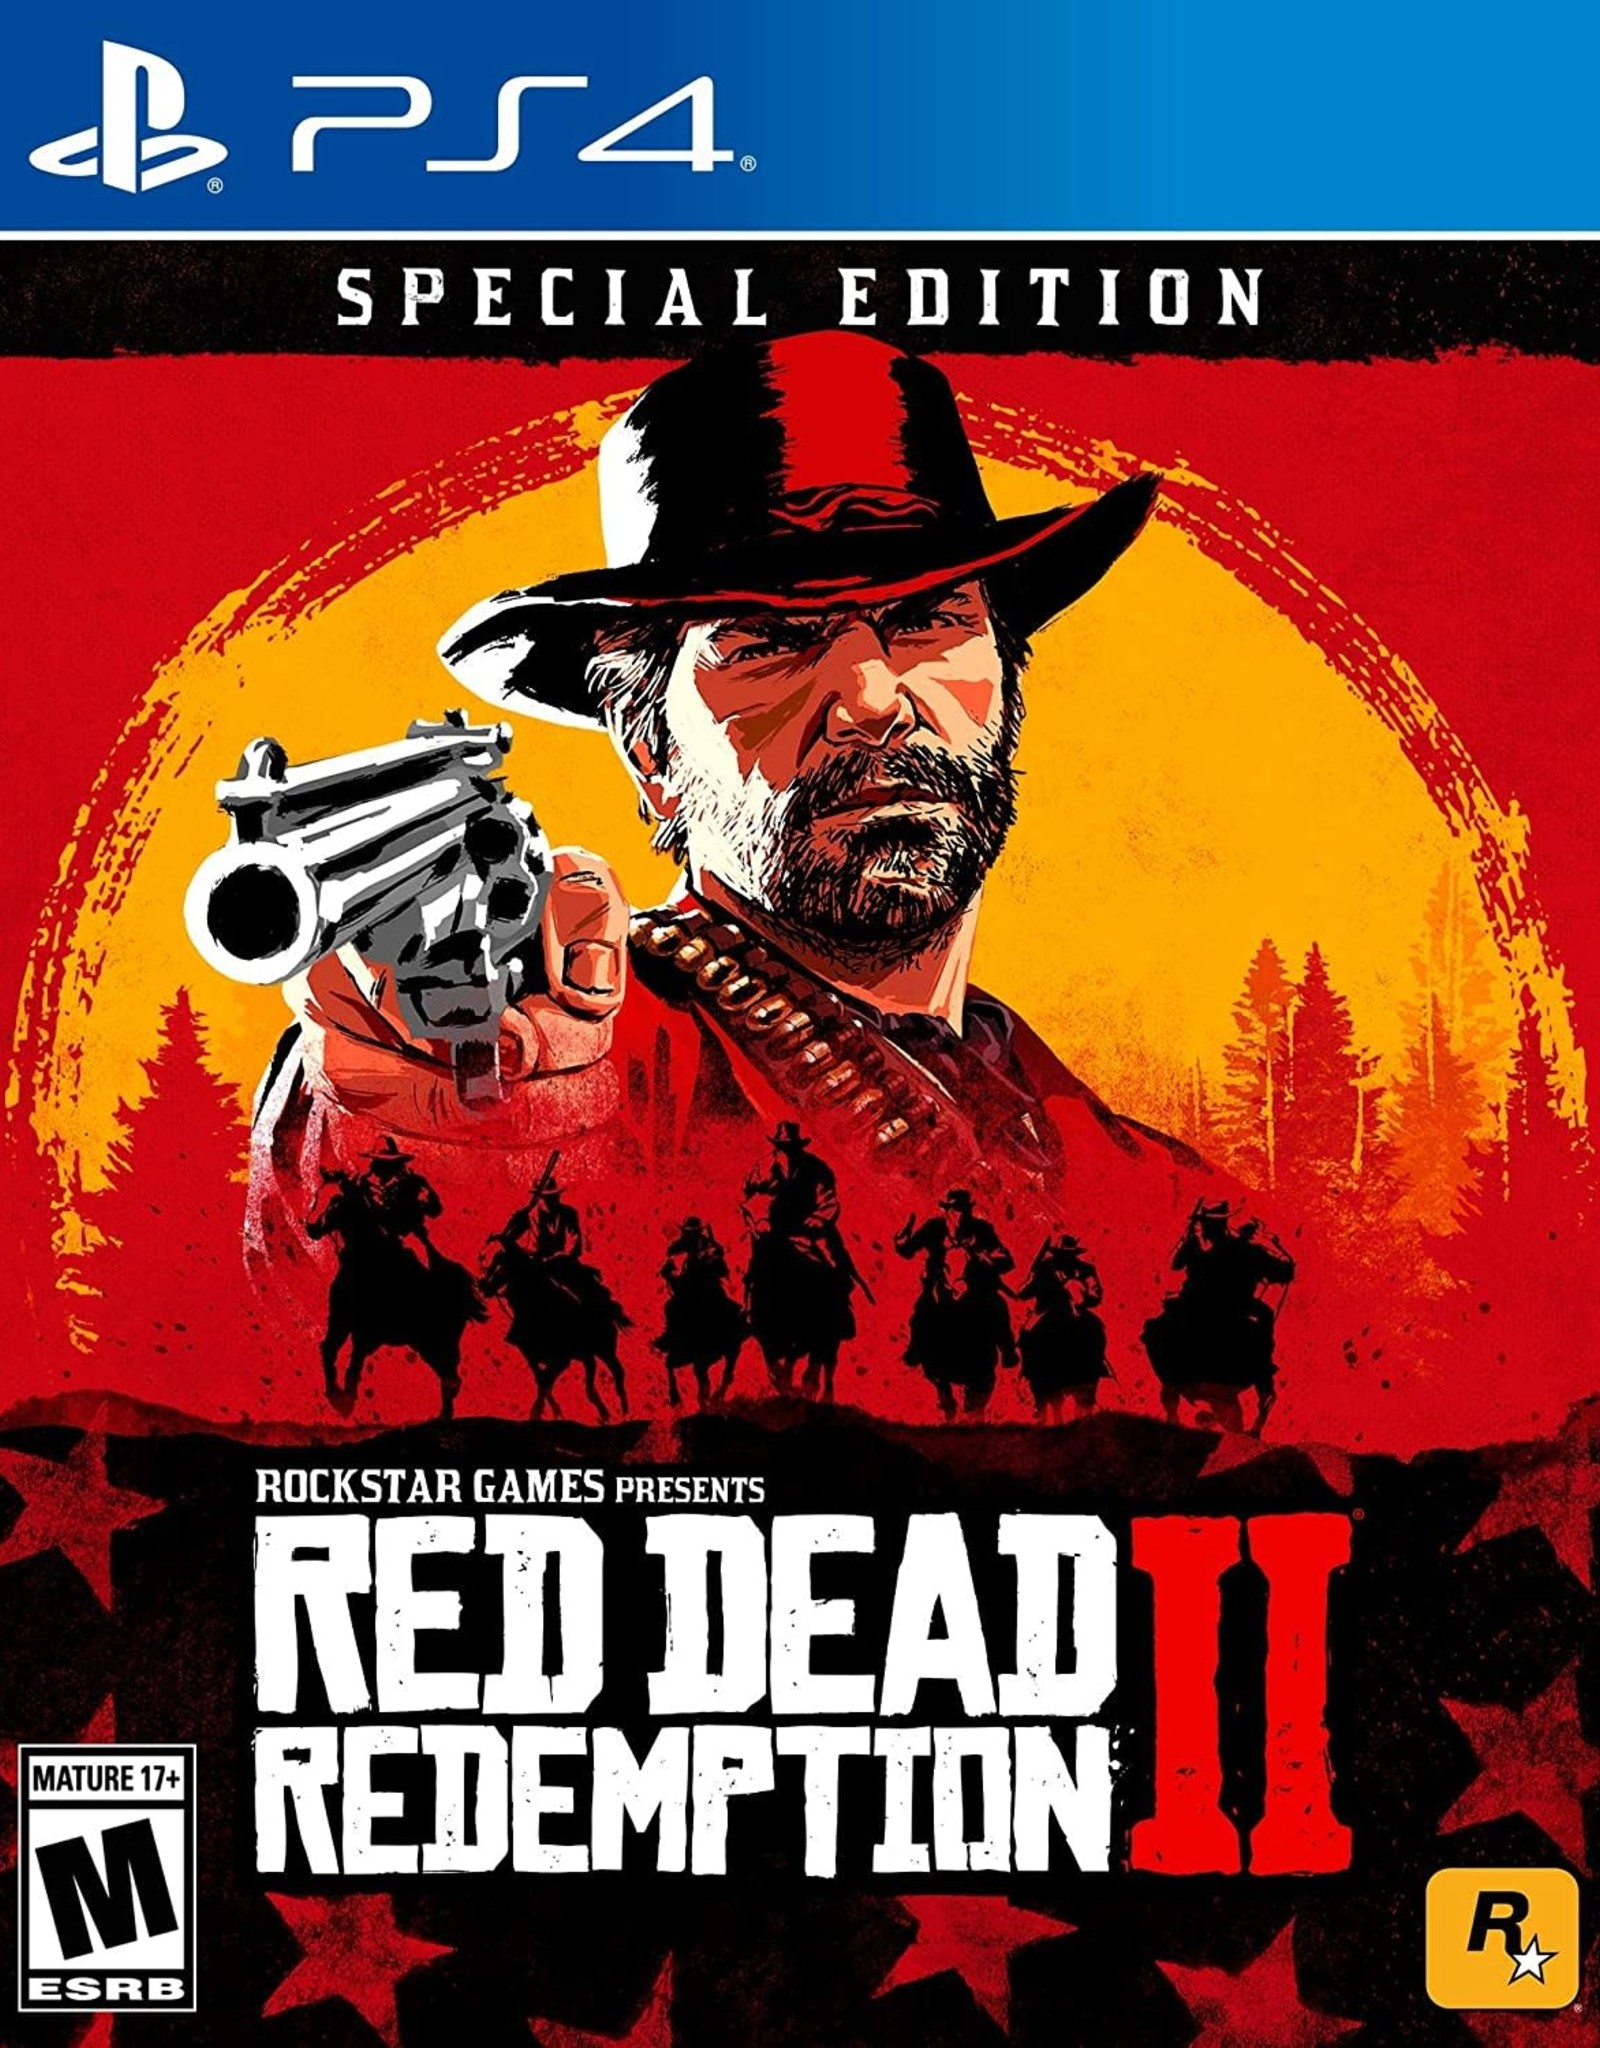 Playstation 4 Red Dead Redemption Special Edition (DLC Not Included, Used)